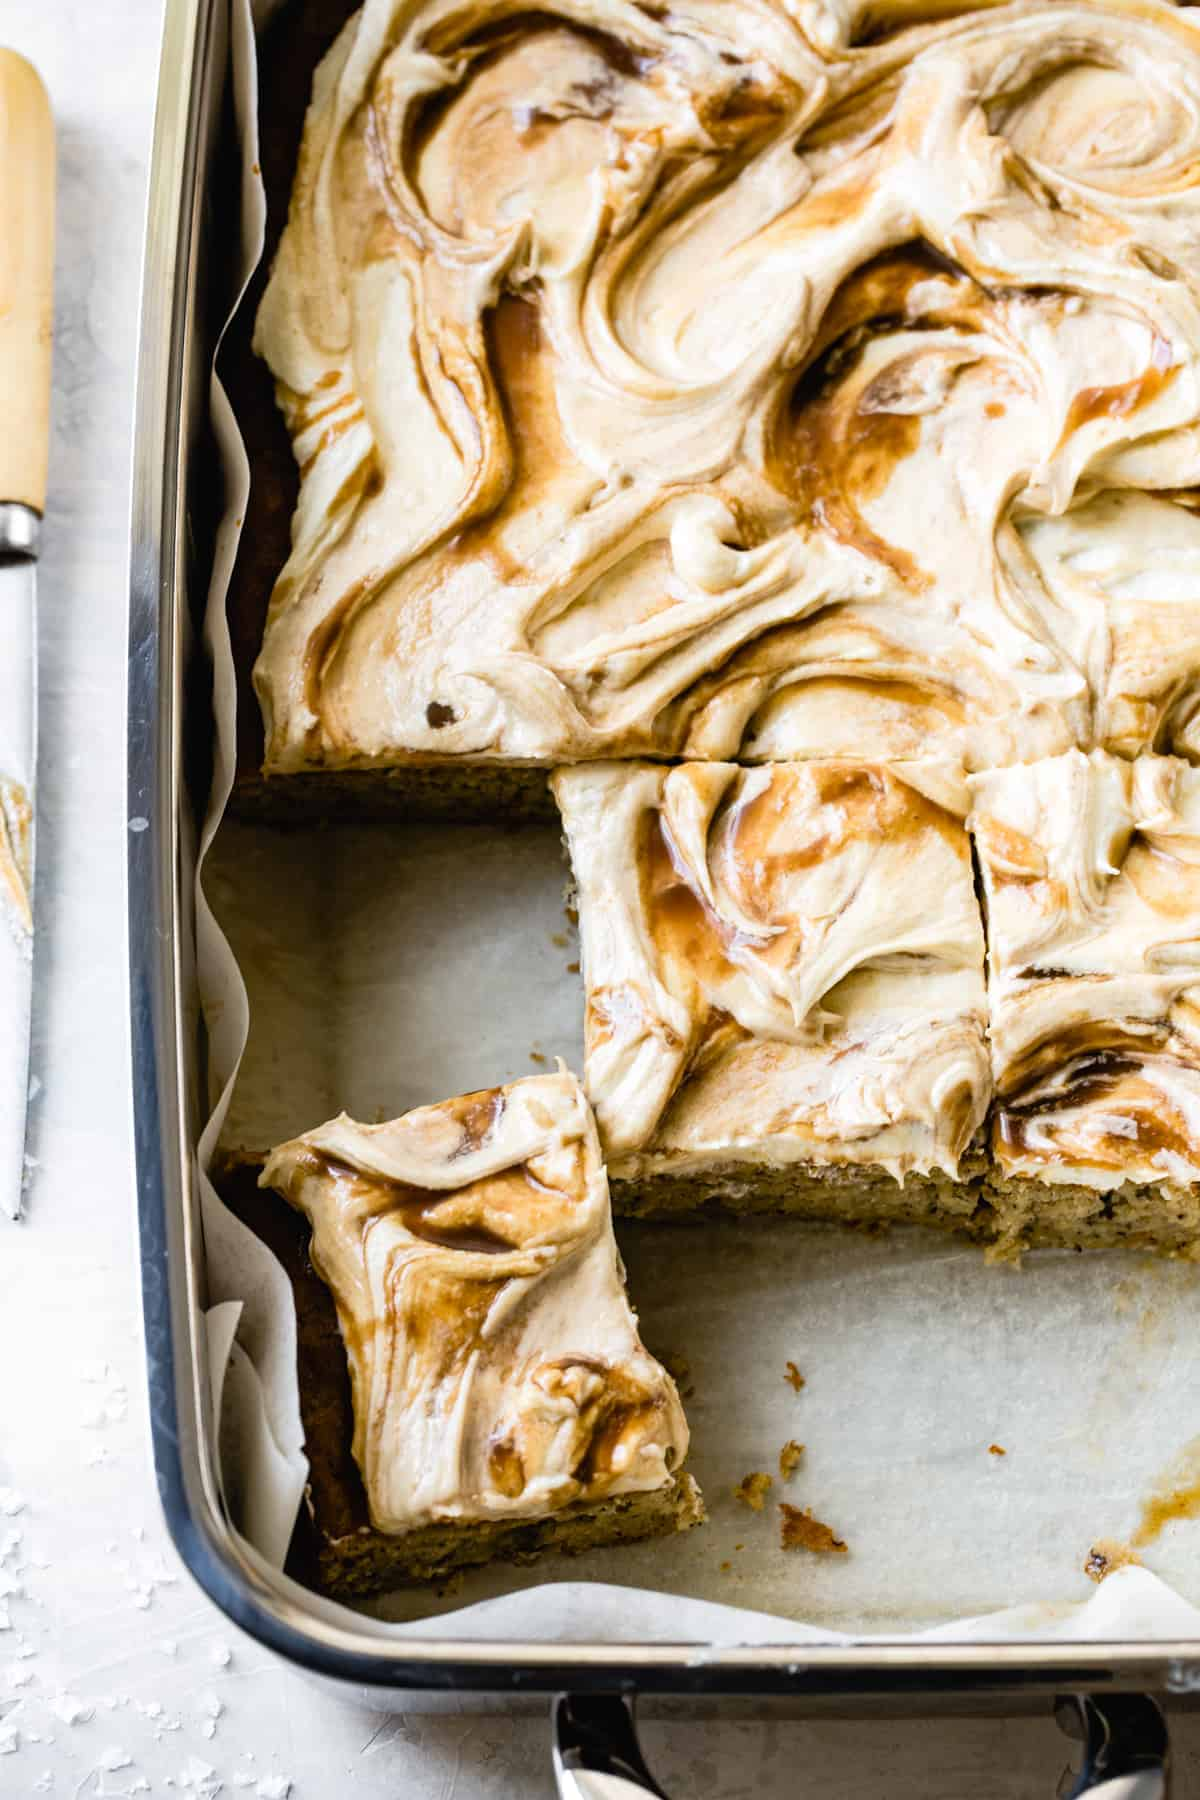 Gluten Free Banana Cake with Cream Cheese Frosting + Butterscotch Swirl